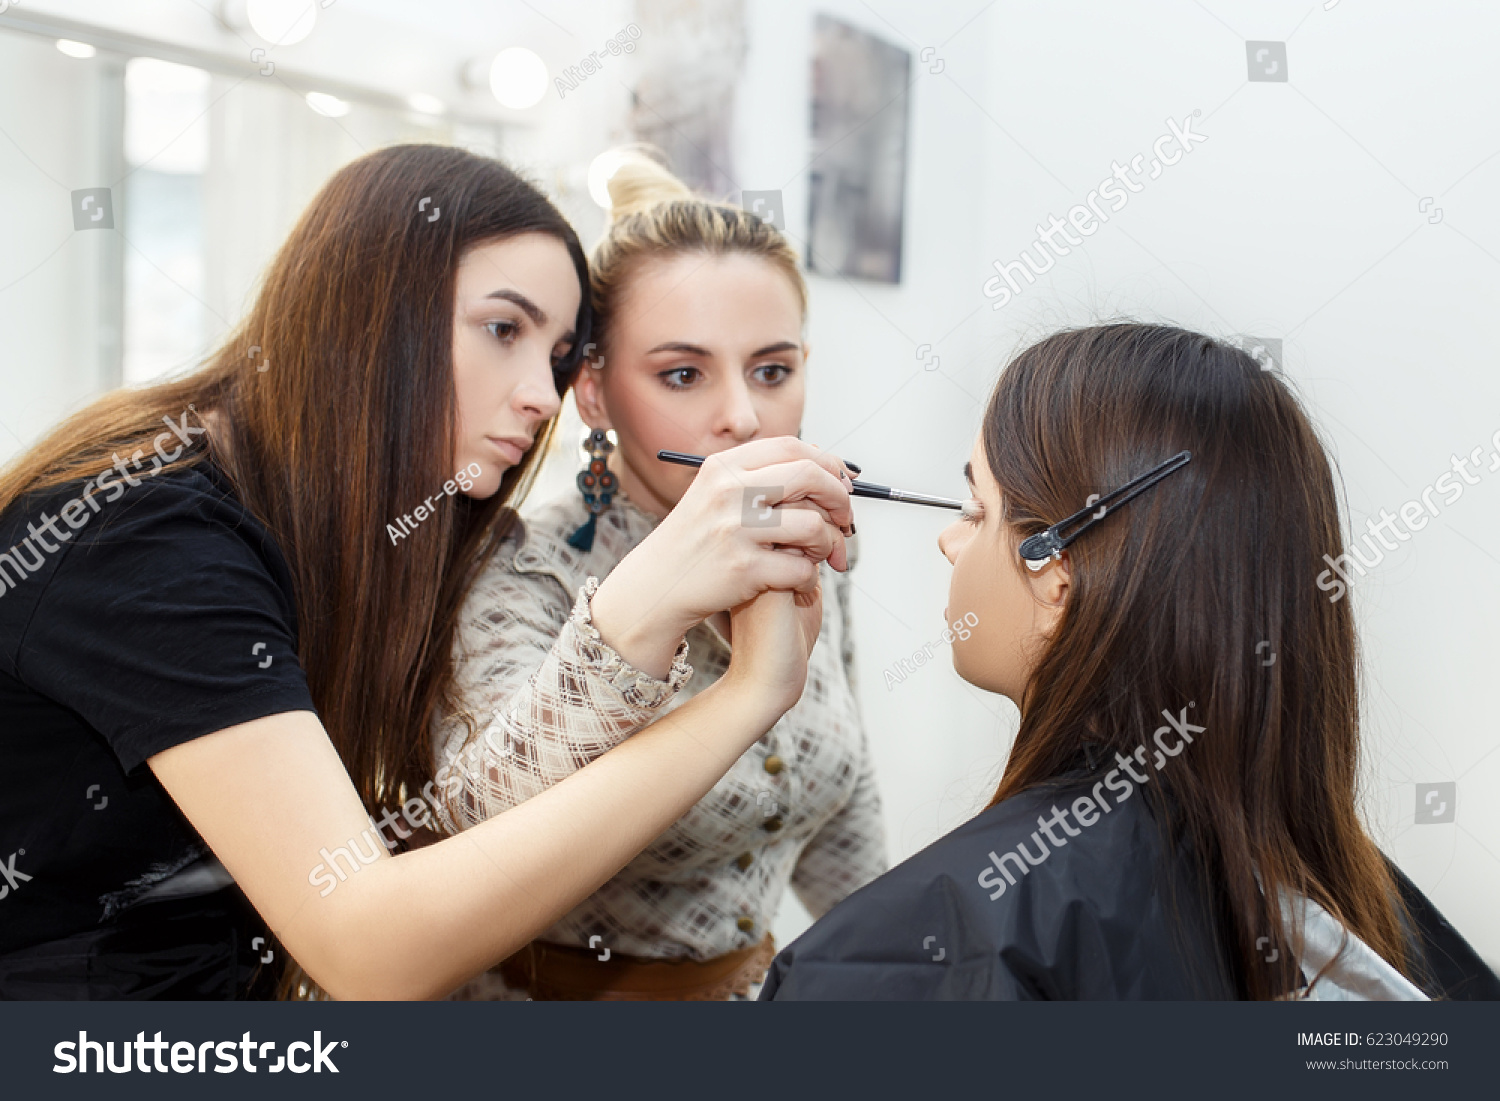 Makeup teacher her student girl makeup stock photo 623049290 makeup teacher with her student girl makeup tutorial lesson at beauty school make baditri Image collections